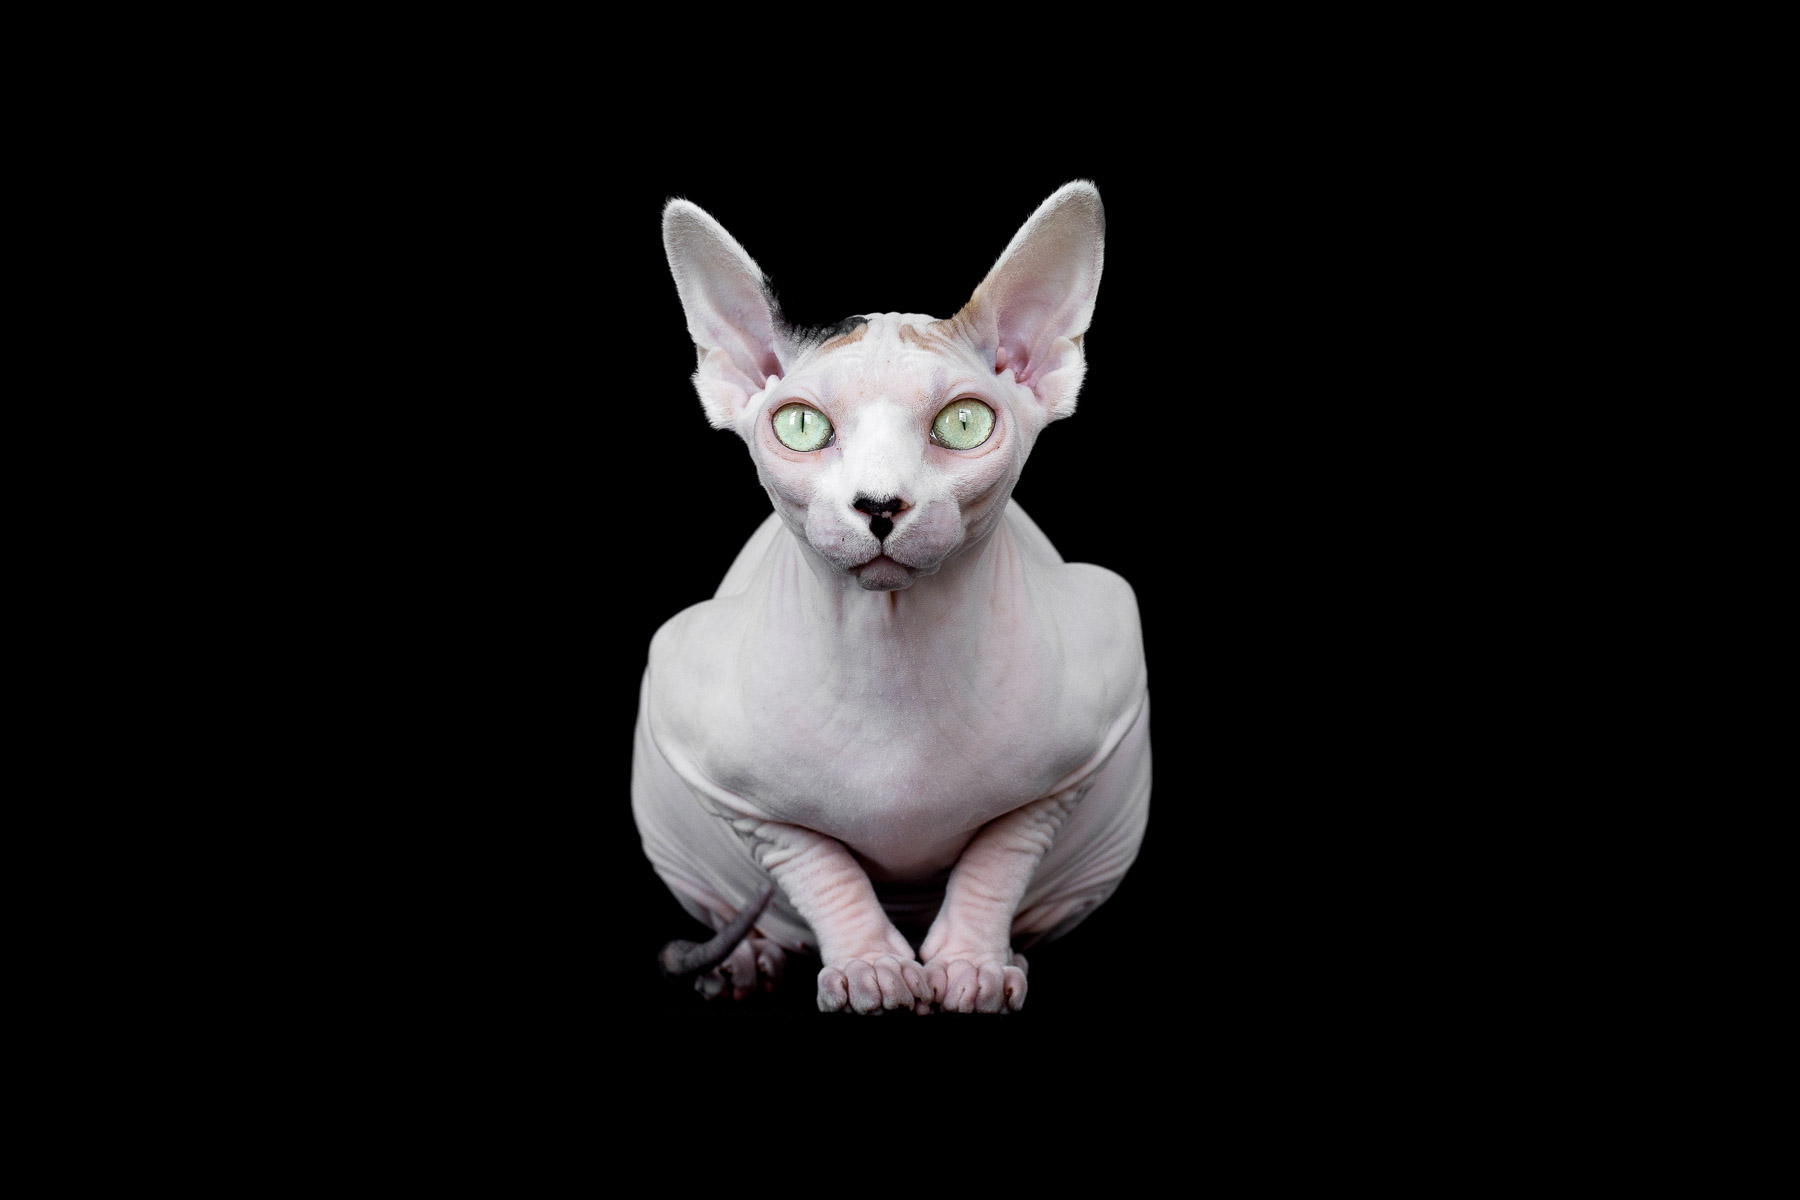 sphynx-cat-photos-by-alicia-rius-3.jpg